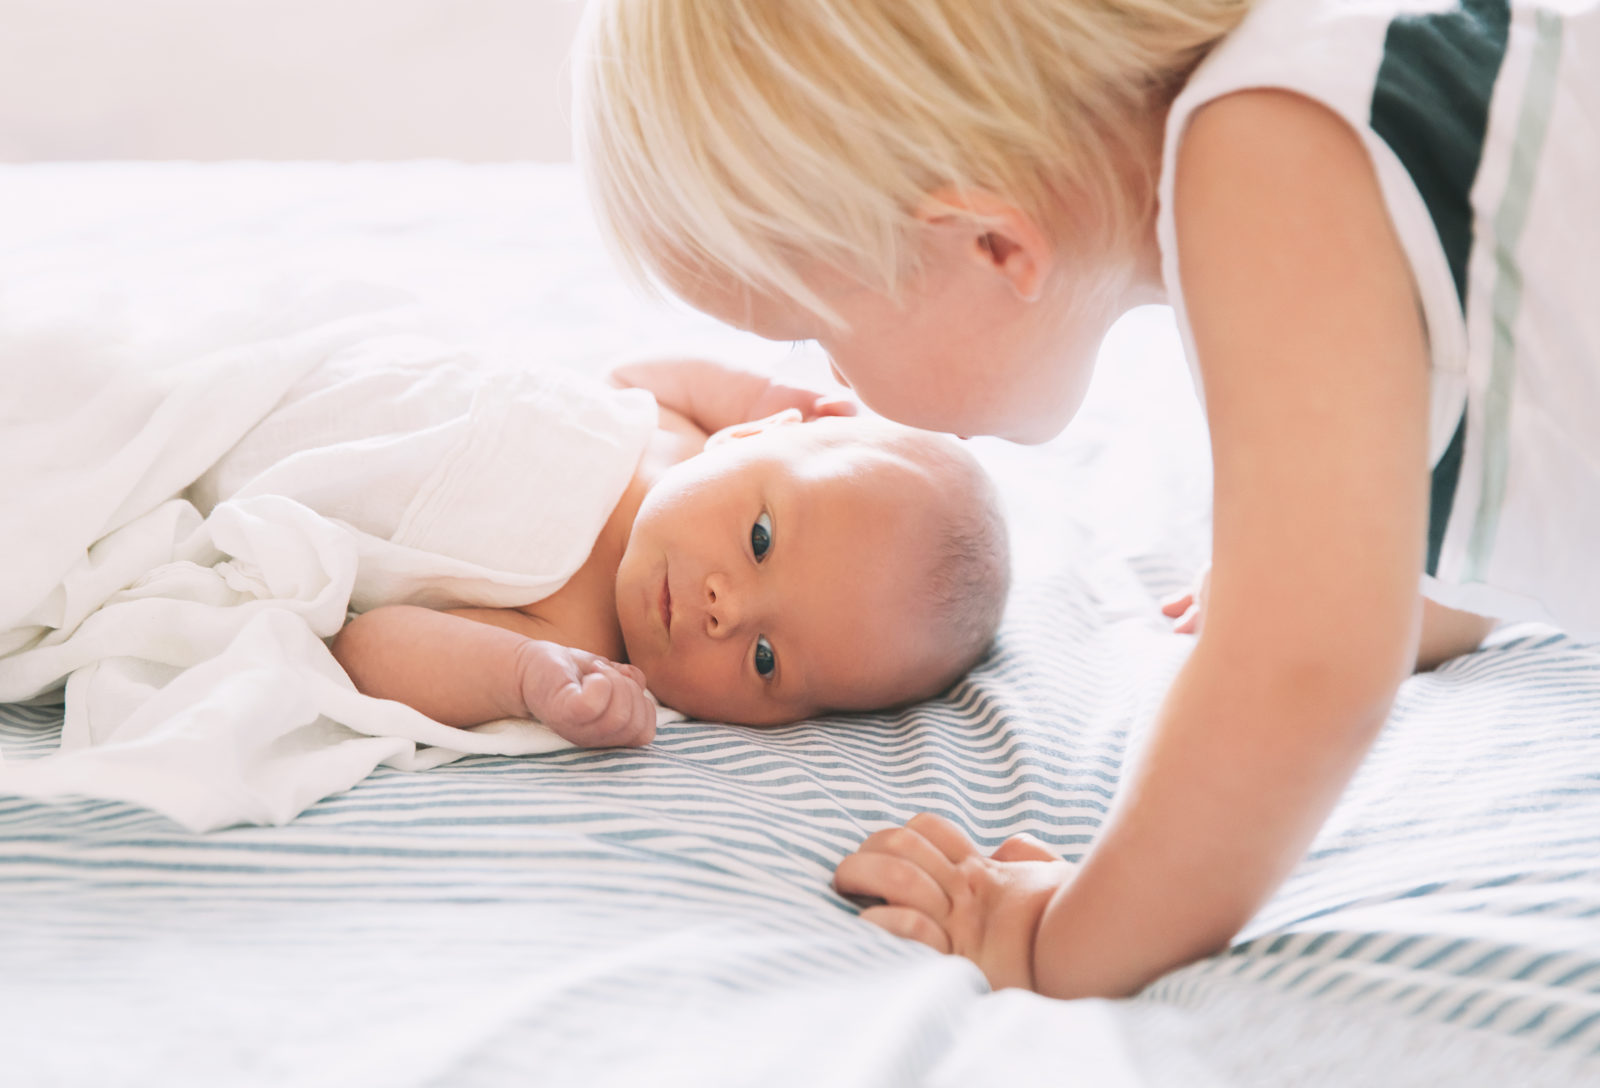 Can I Love My Second Baby As Much As My First? www.herviewfromhome.com